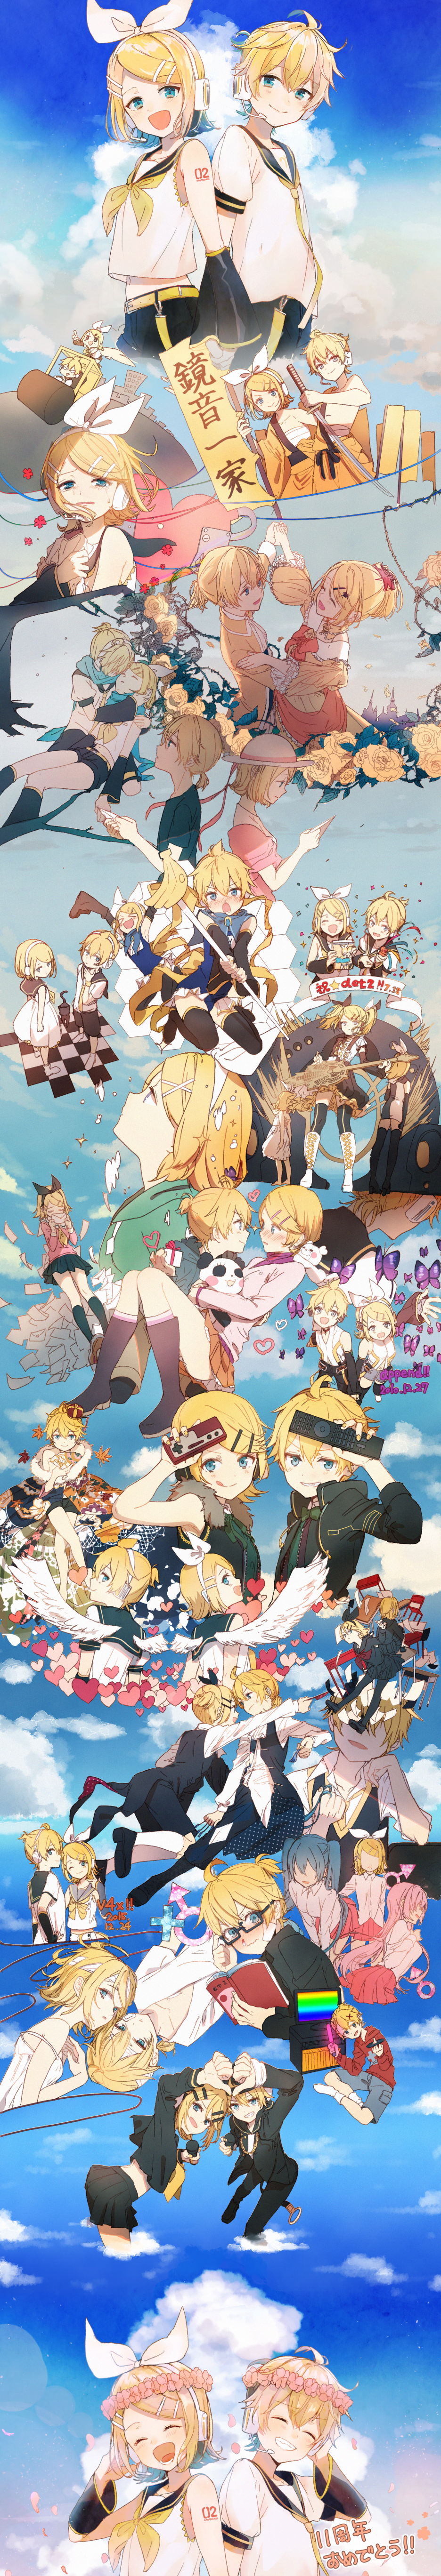 >_< 1boy 2010 2015 3girls :d :p absurdres aku_no_musume_(vocaloid) allen_avadonia angel angel_wings anger_vein angry animal autumn_leaves back-to-back banana bare_shoulders bass_clef belt blonde_hair blood blue_eyes blue_neckwear blue_scarf blue_sky blush boots box bug building bulldozer butterfly cable carrying cat cd chair checkered checkered_floor closed_eyes clouds cloudy_sky commentary_request confetti controller crossed_arms crown crying crying_with_eyes_open dancing dappou_rock_(vocaloid) dated day desk detached_sleeves dress dvd electric_angel_(vocaloid) embarrassed evillious_nendaiki eye_contact eyebrows_visible_through_hair facing_away fighting floating floating_hair flower food fork formal from_above fruit full_body gift gift_box glasses glowstick grin guitar hair_ribbon hands_on_own_chest hands_together happy hat hatsune_miku head_tilt head_wreath headset heart height_difference high_heel_boots high_heels highres holding holding_gift holding_instrument holding_sign holding_staff hood hoodie huge_filesize idola_no_circus_(vocaloid) index_finger_raised insect instrument interlocked_fingers jam_(zamuchi) japanese_clothes jumping kagamine_len kagamine_len_(append) kagamine_len_(vocaloid4) kagamine_rin kagamine_rin_(append) kagamine_rin_(vocaloid4) knife kokoro_(vocaloid) leaf legs_crossed letter long_image looking_at_another looking_at_viewer looking_away looking_back looking_down looking_up lost_one_no_goukoku_(vocaloid) mars_symbol megurine_luka microphone migikata_no_chou_(vocaloid) multiple_girls multiple_persona musical_note necktie no_eyes nosebleed notebook okochama_sensou_(vocaloid) open_mouth ore_no_road_roller_da!_(vocaloid) outdoors outstretched_arms palace paper_airplane party_popper petals pink_flower plus_danshi_(vocaloid) plus_sign pointing polka_dot profile puffy_short_sleeves puffy_sleeves purple_butterfly remote_control ribbon riding riliane_lucifen_d'autriche rimocon_(vocaloid) rose roshin_yuukai_(vocaloid) sad sailor_collar scarf school_d